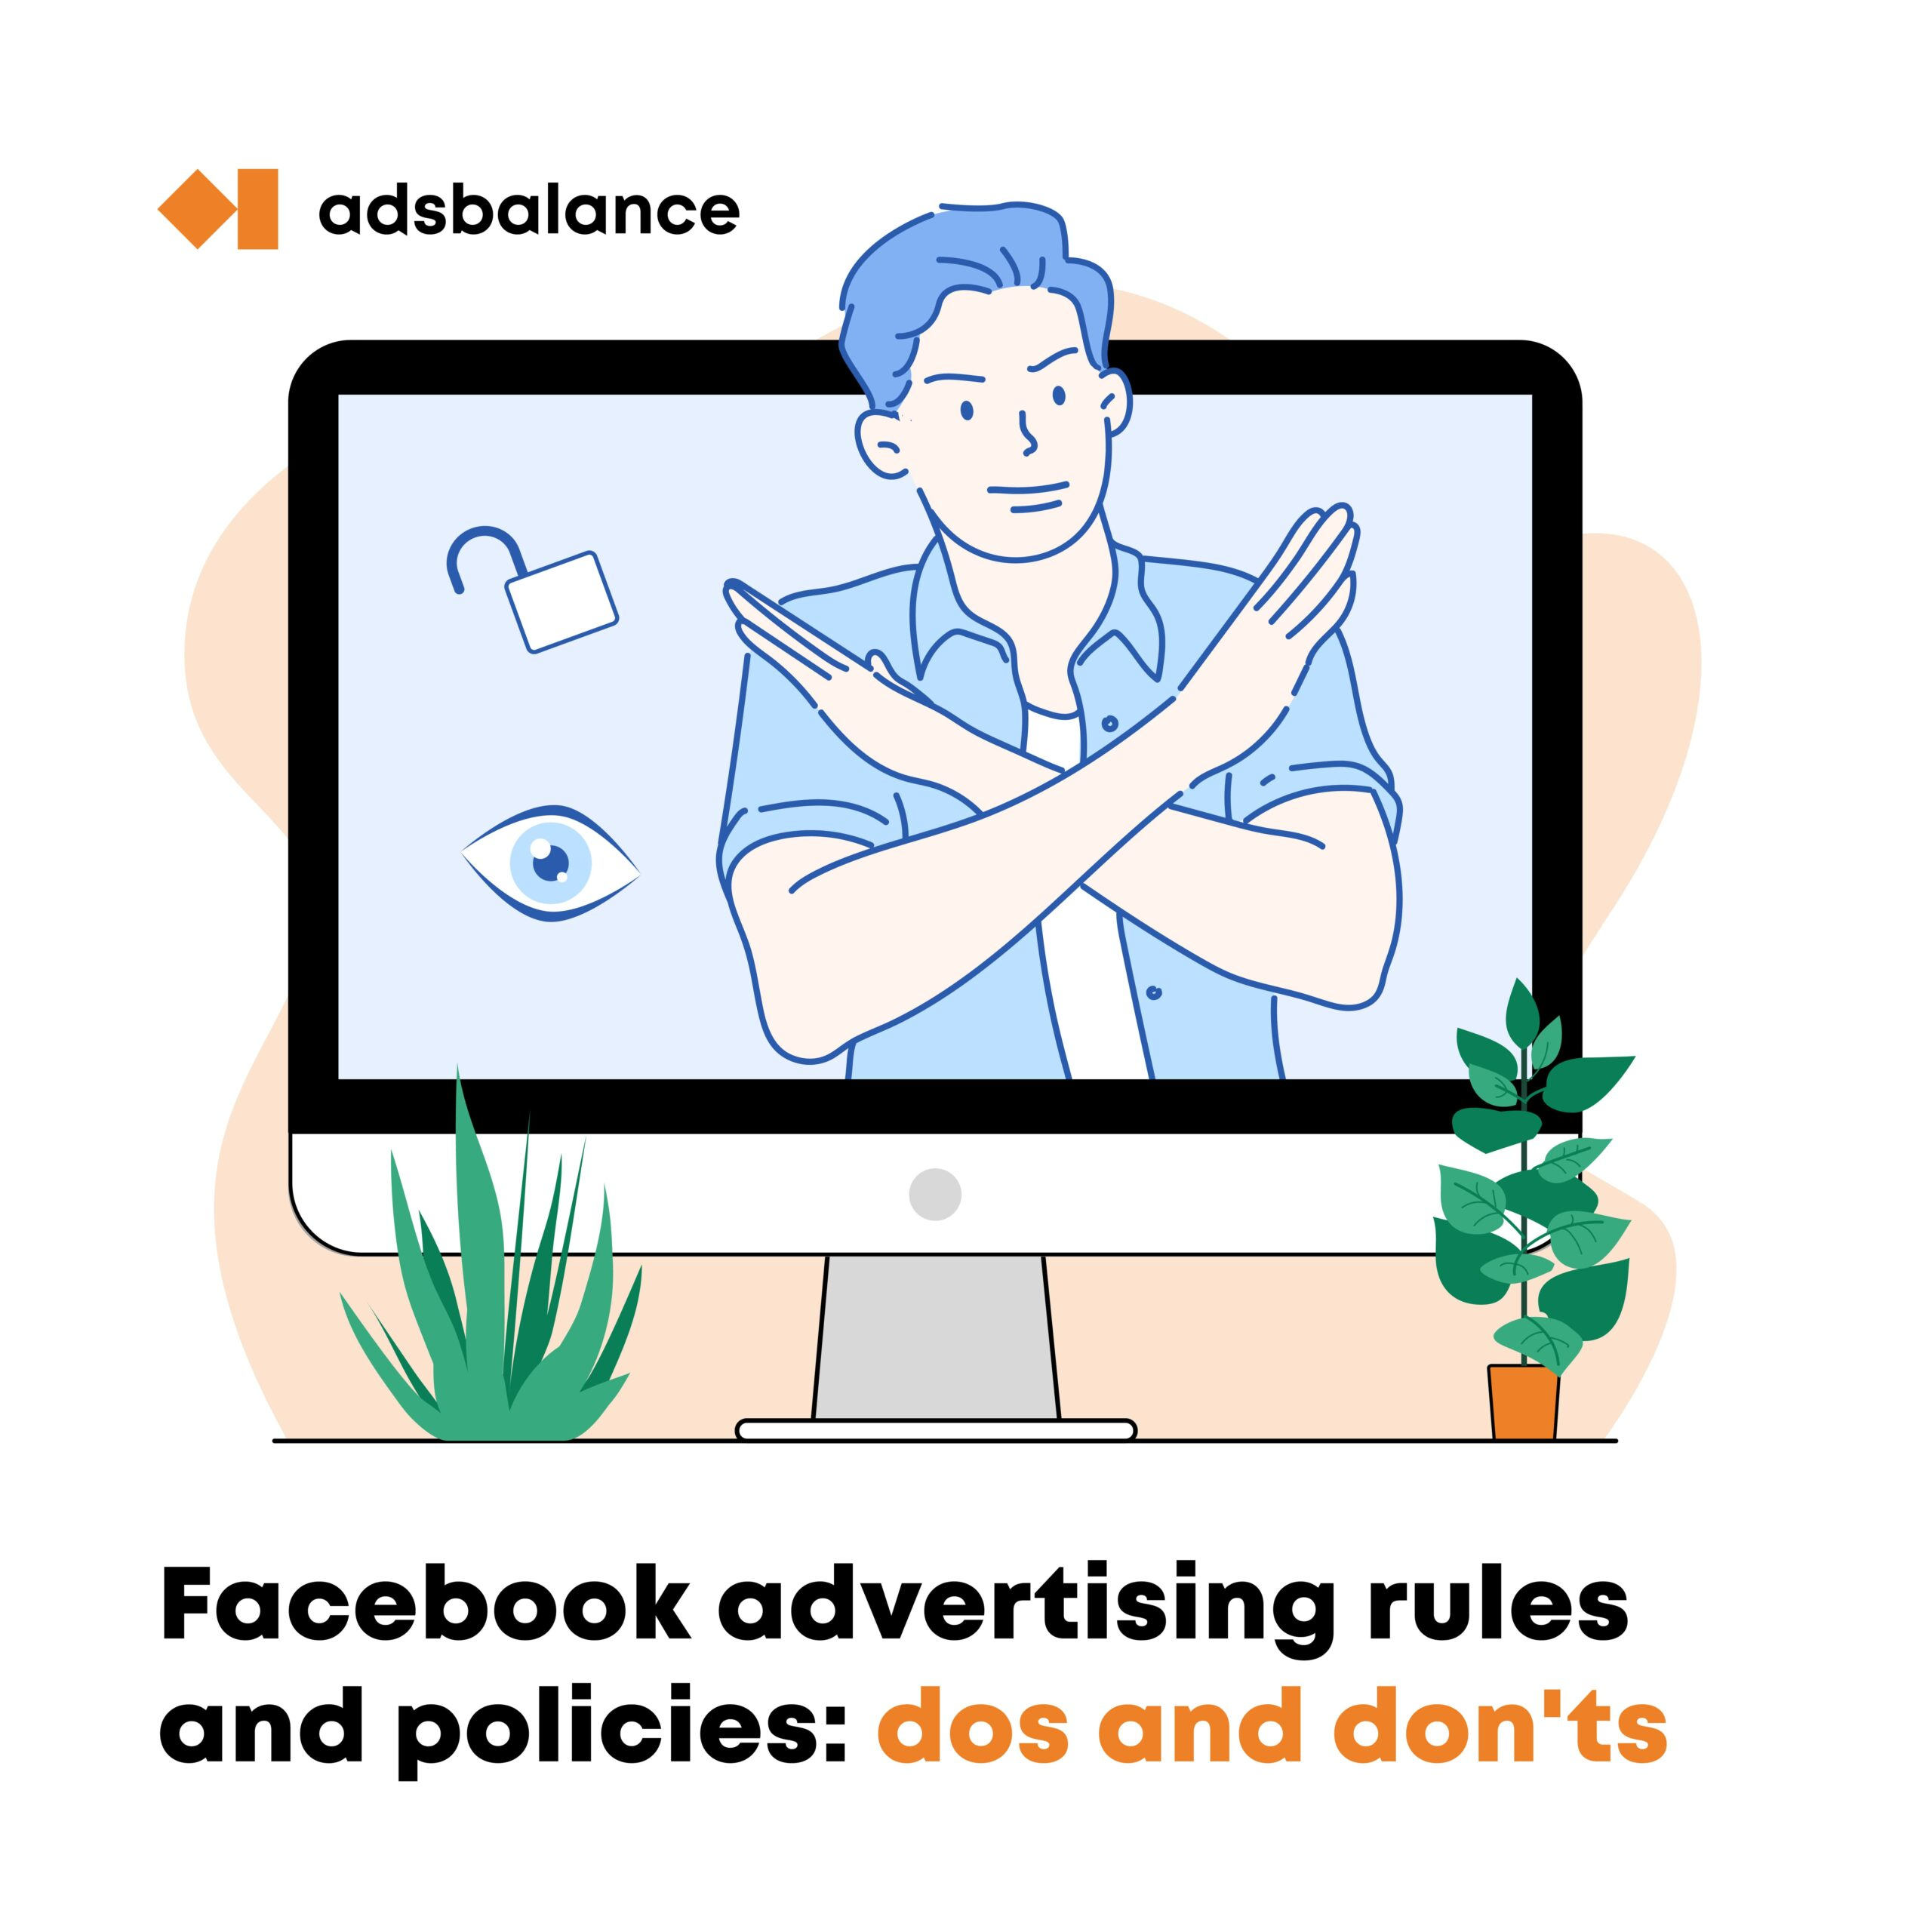 Facebook Advertising Rules and Policies 2021: Do's and Don'ts